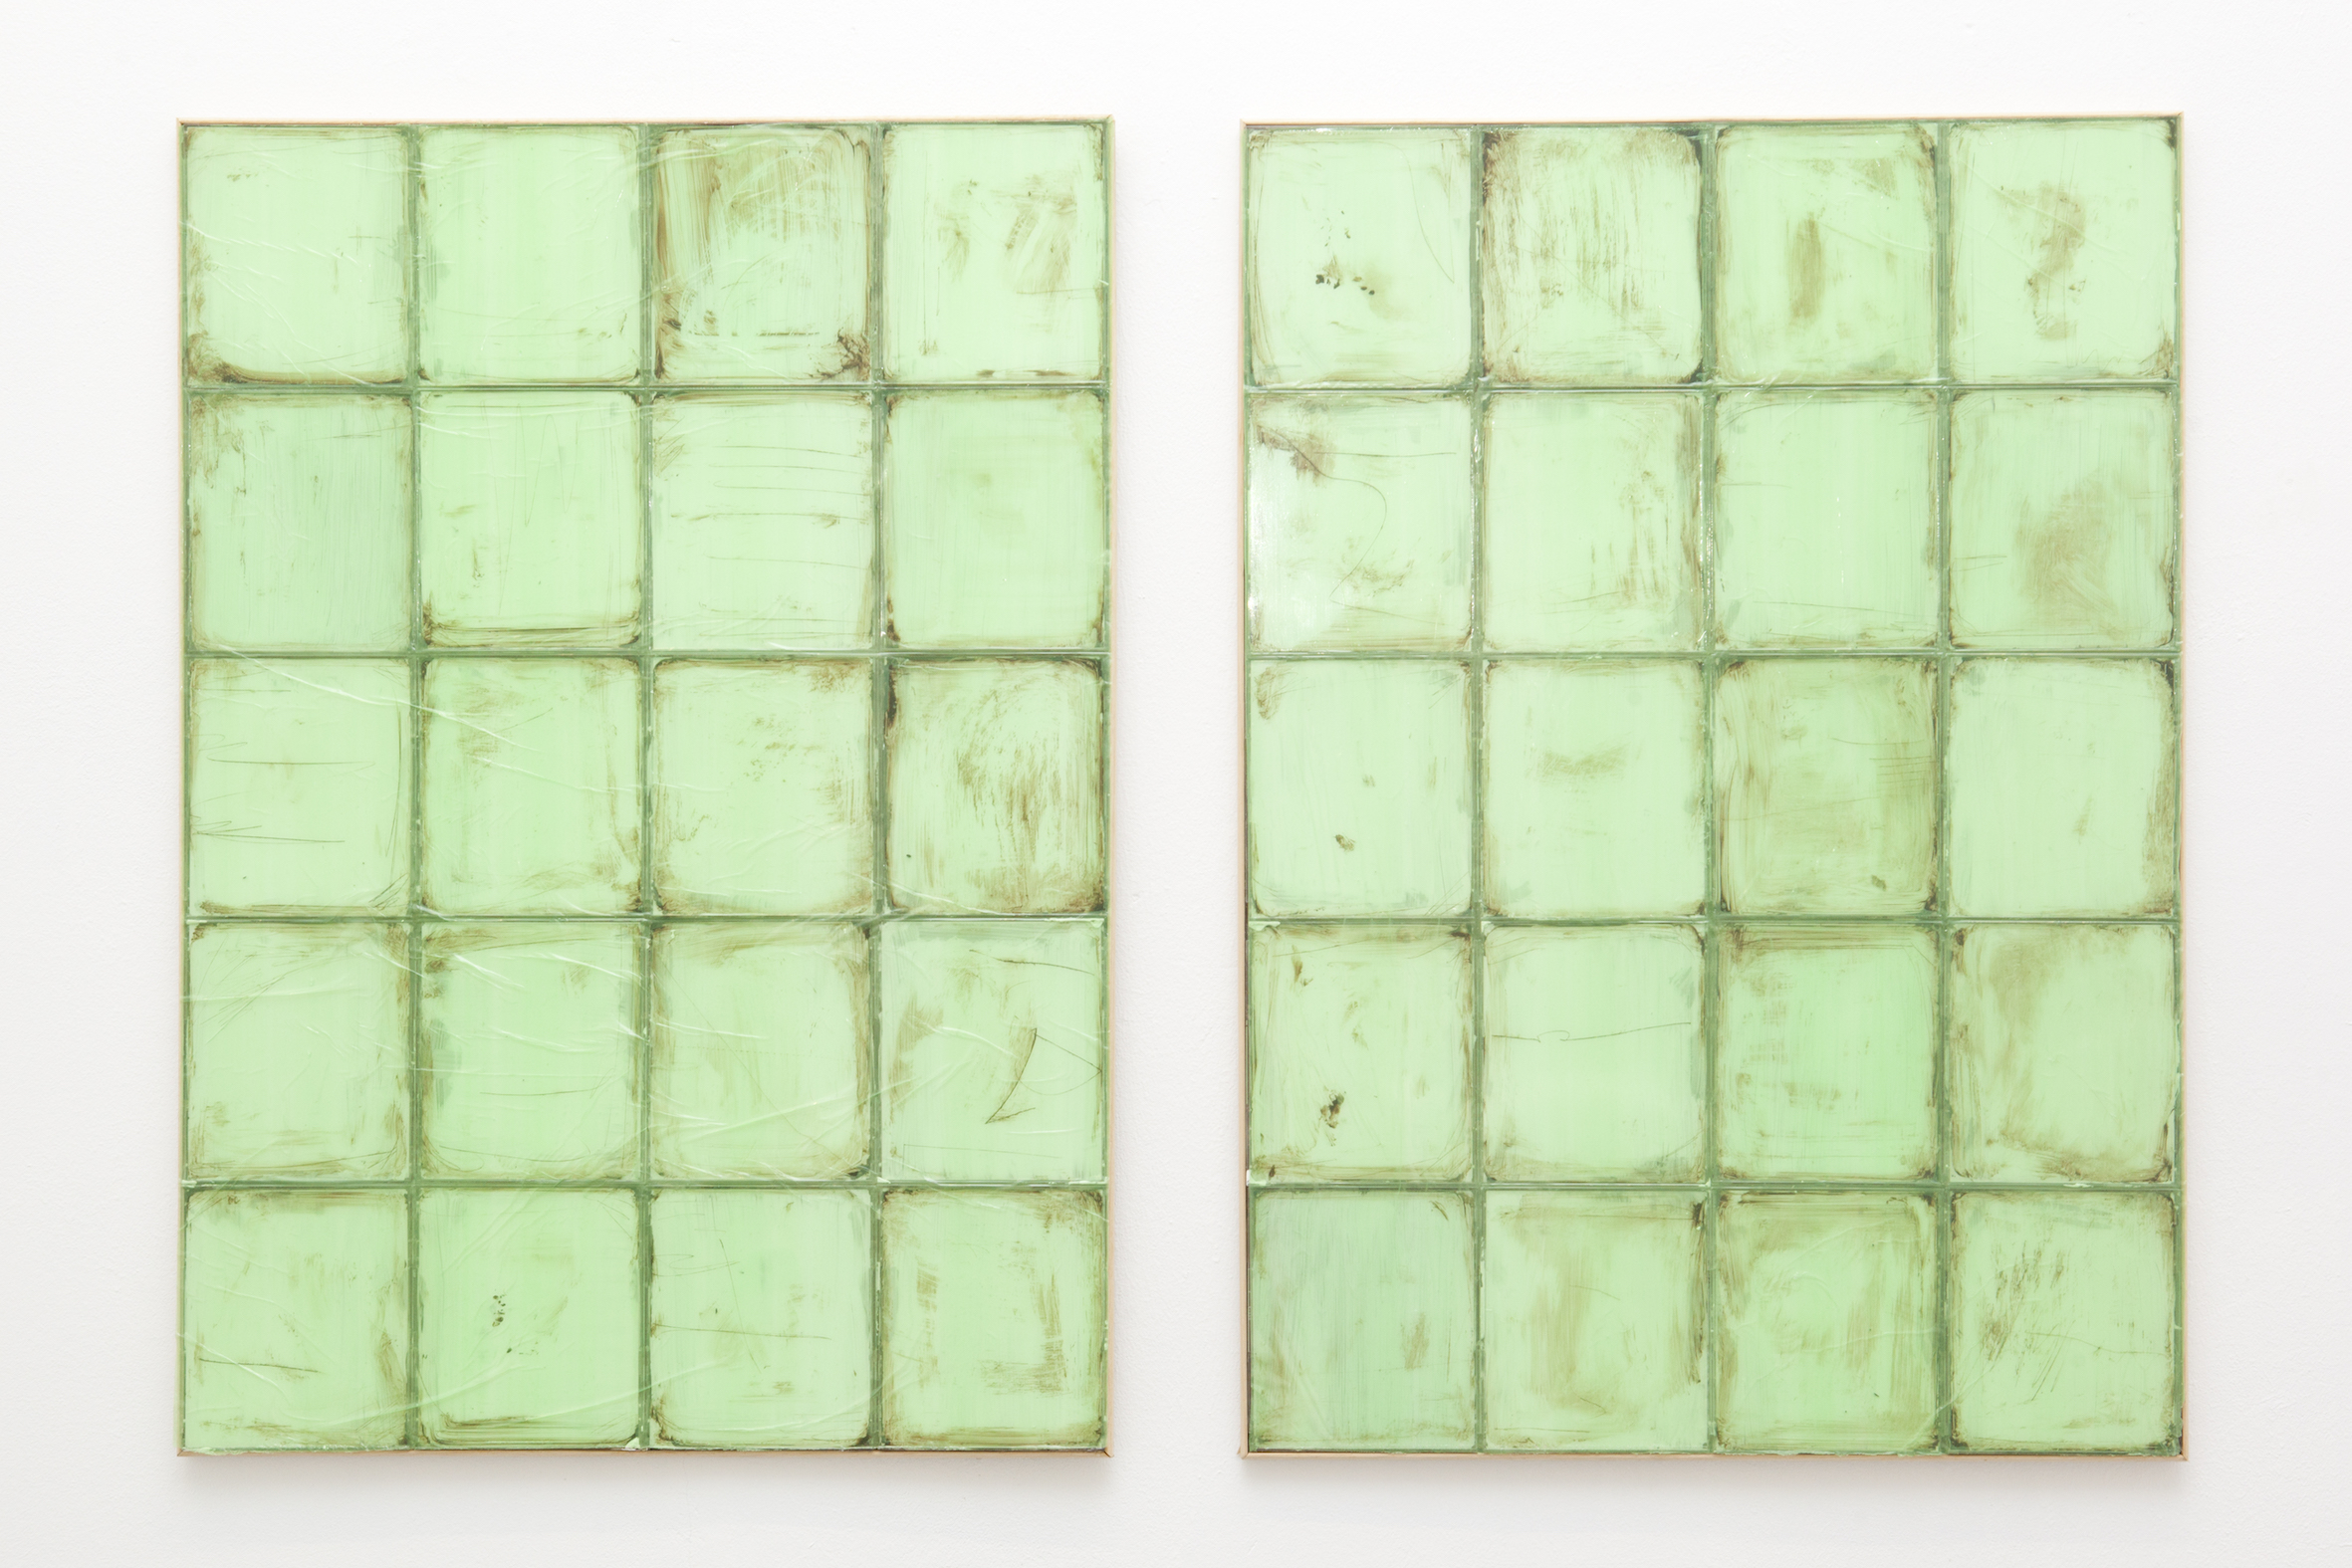 Gert Scheerlinck, Untitled (green tiles)